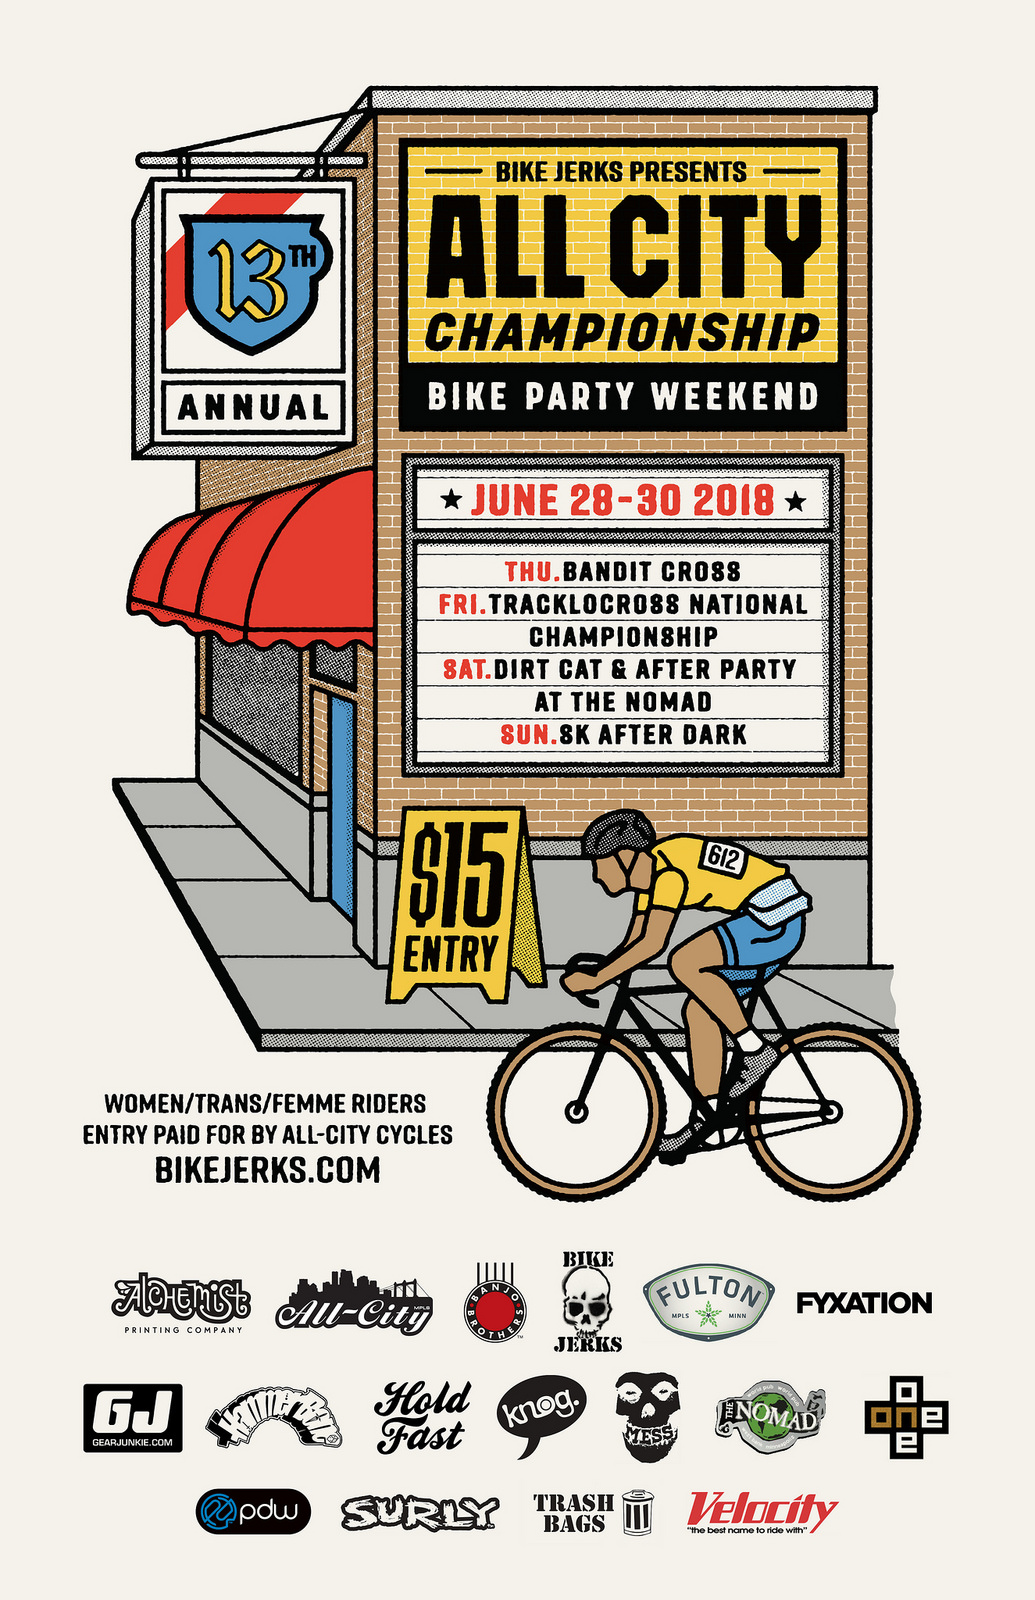 2018 All City Championships - W/T/F Riders Receive Free Entry